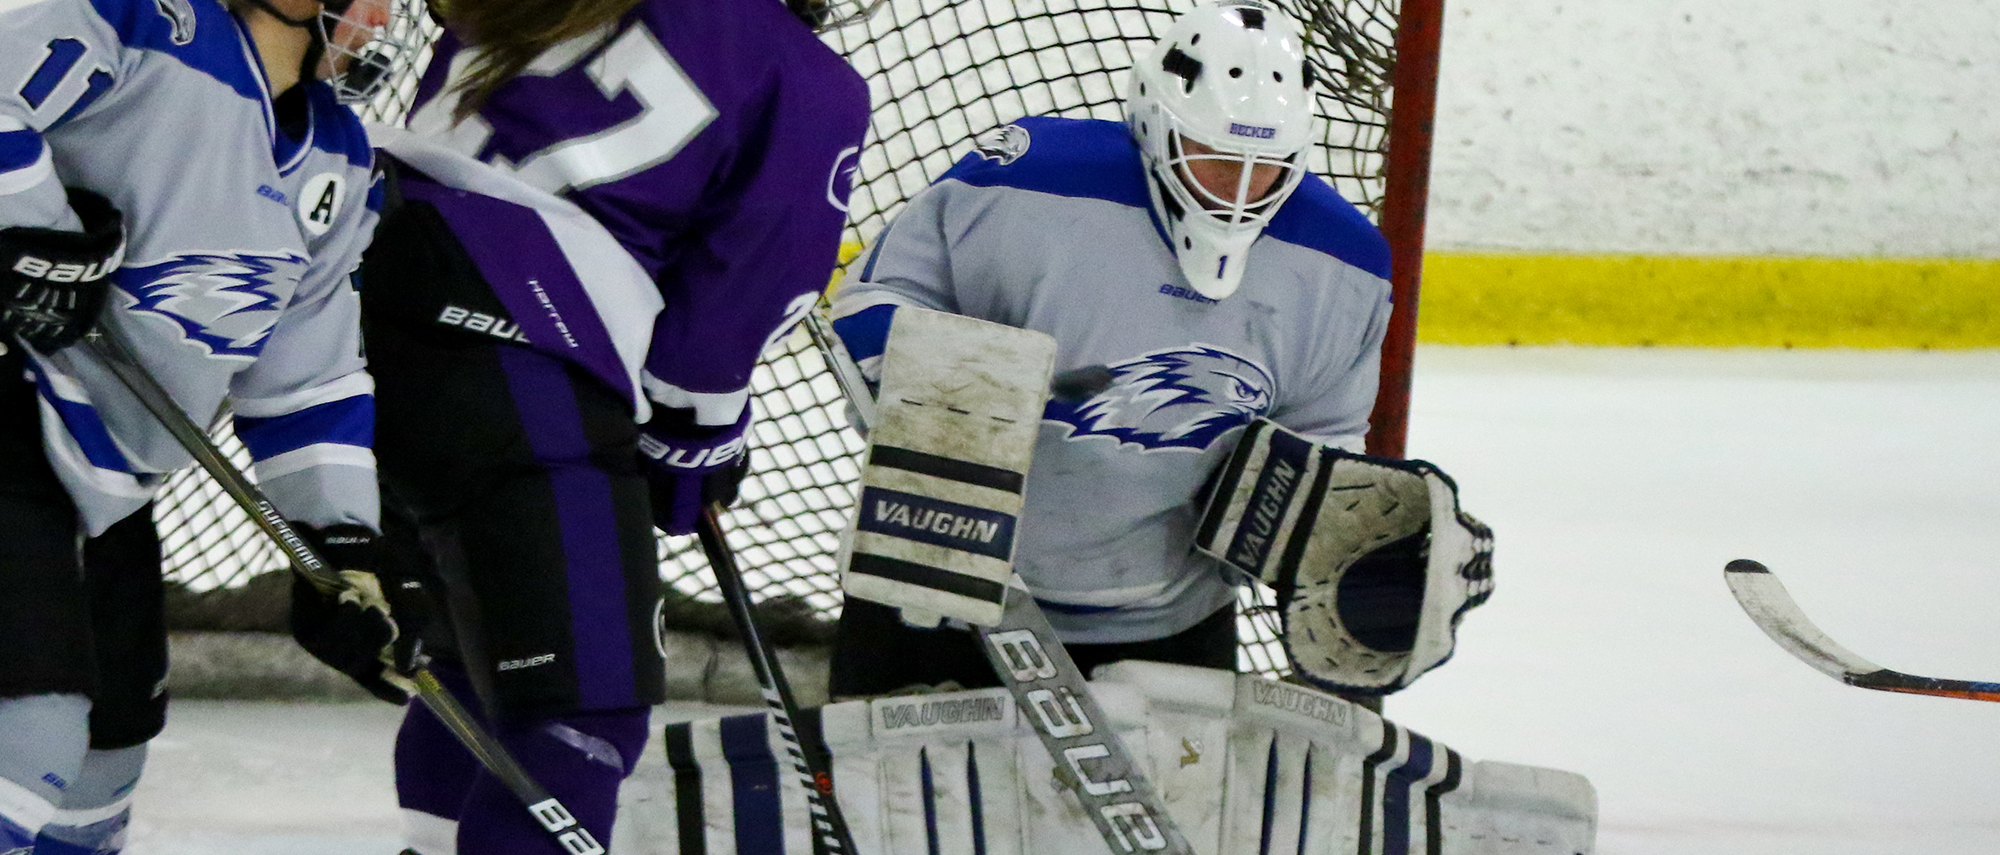 Madison Rigsby made 59 saves in a loss to Utica